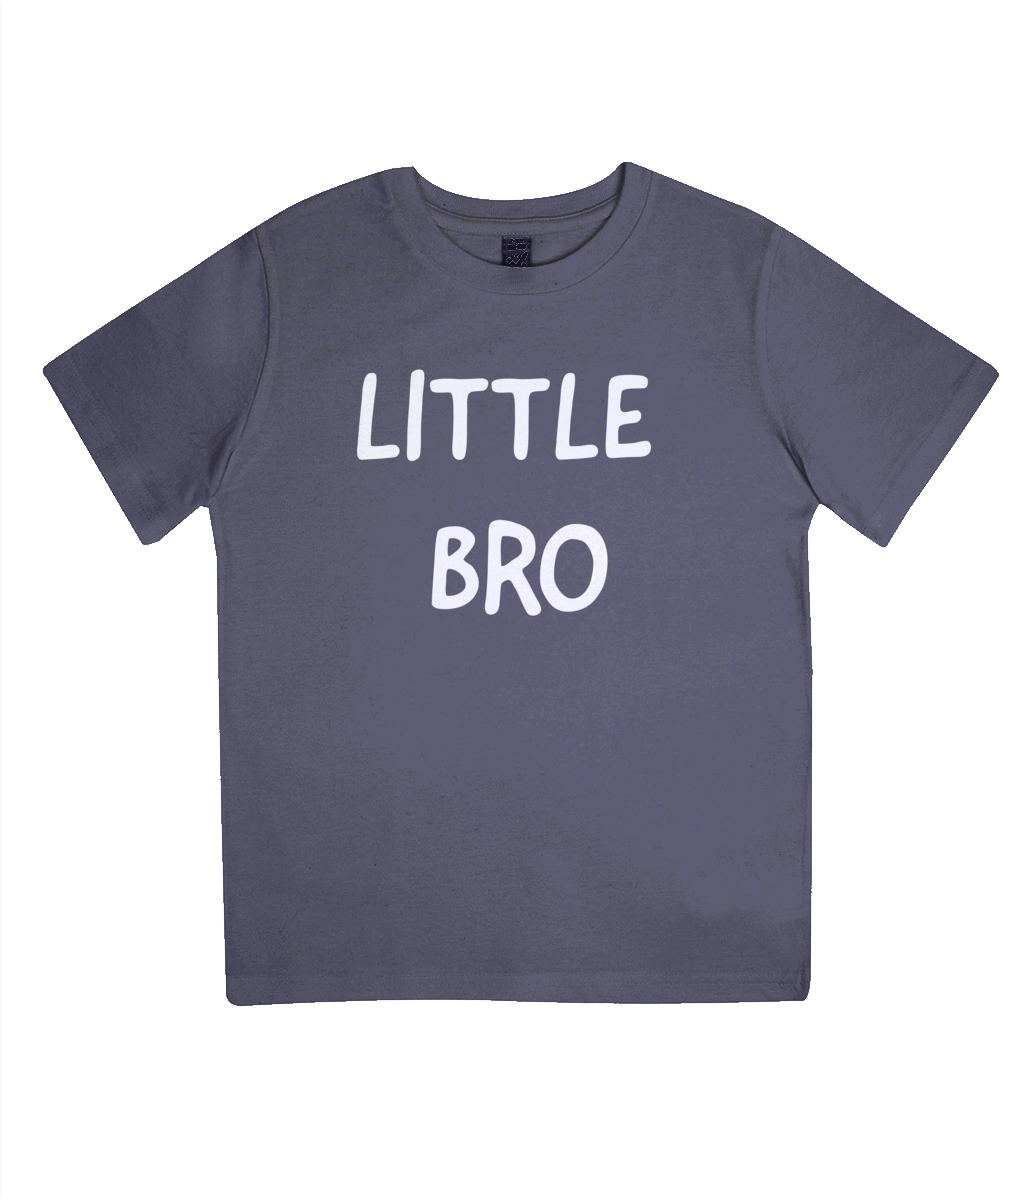 black with white text little bro t-shirt in organic cotton